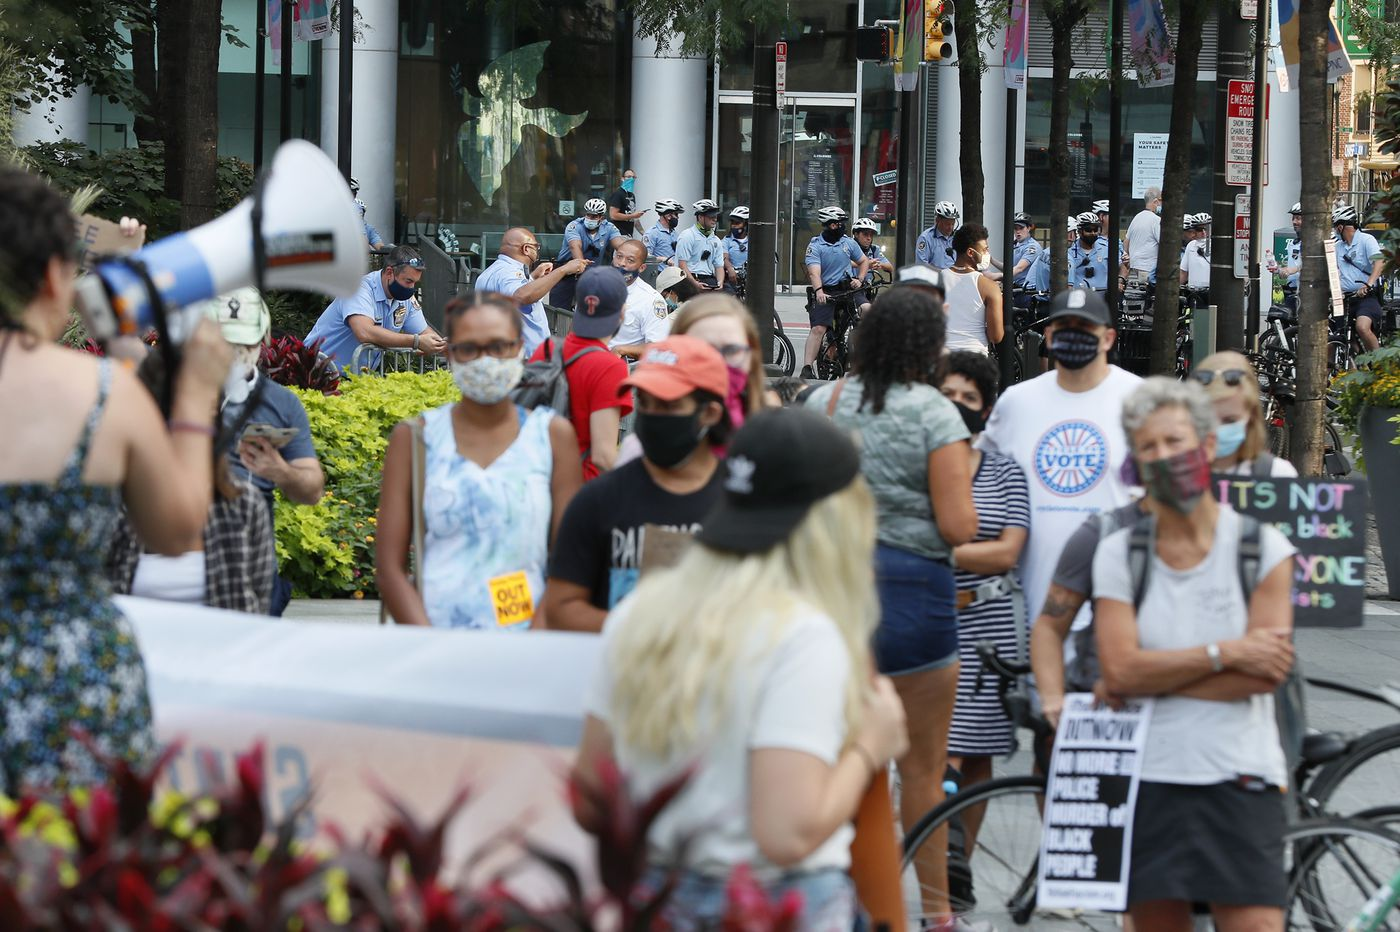 Philly protesters call for justice for Jacob Blake: 'Now is the time to take to the streets'